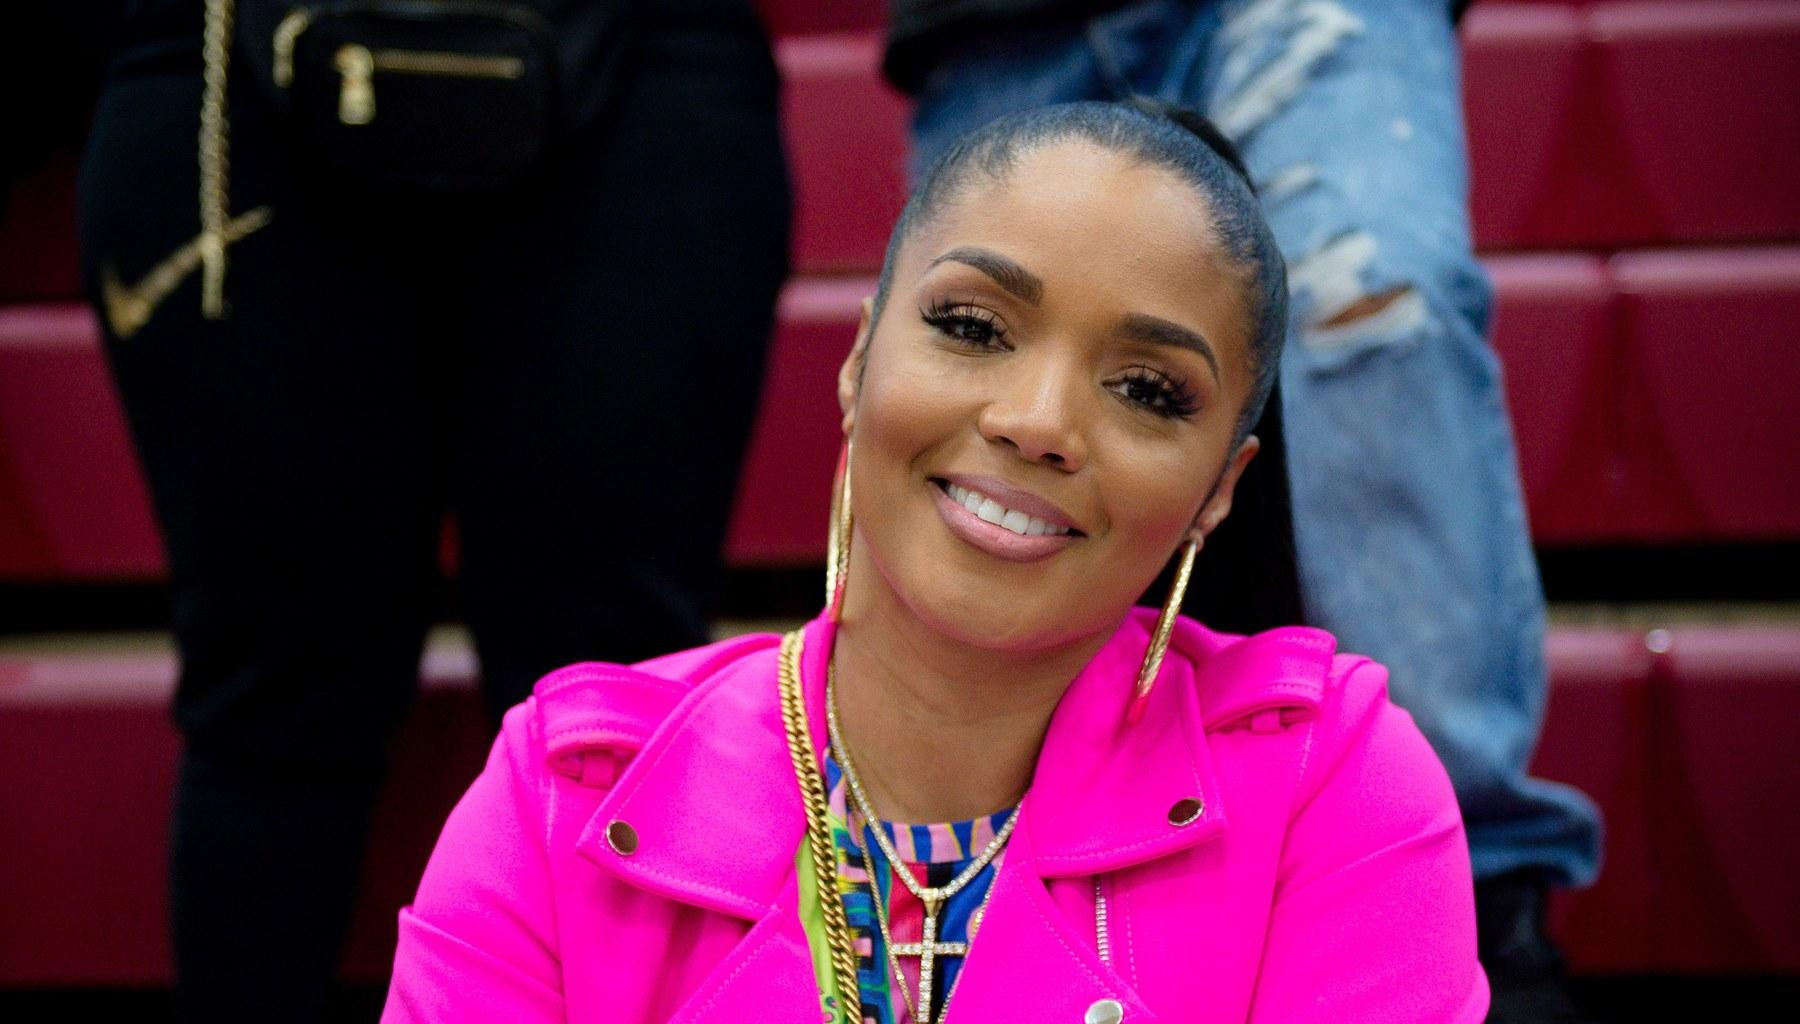 Rasheeda Frost Gushes Over Her Son, Karter - Check Out The Sweet Video